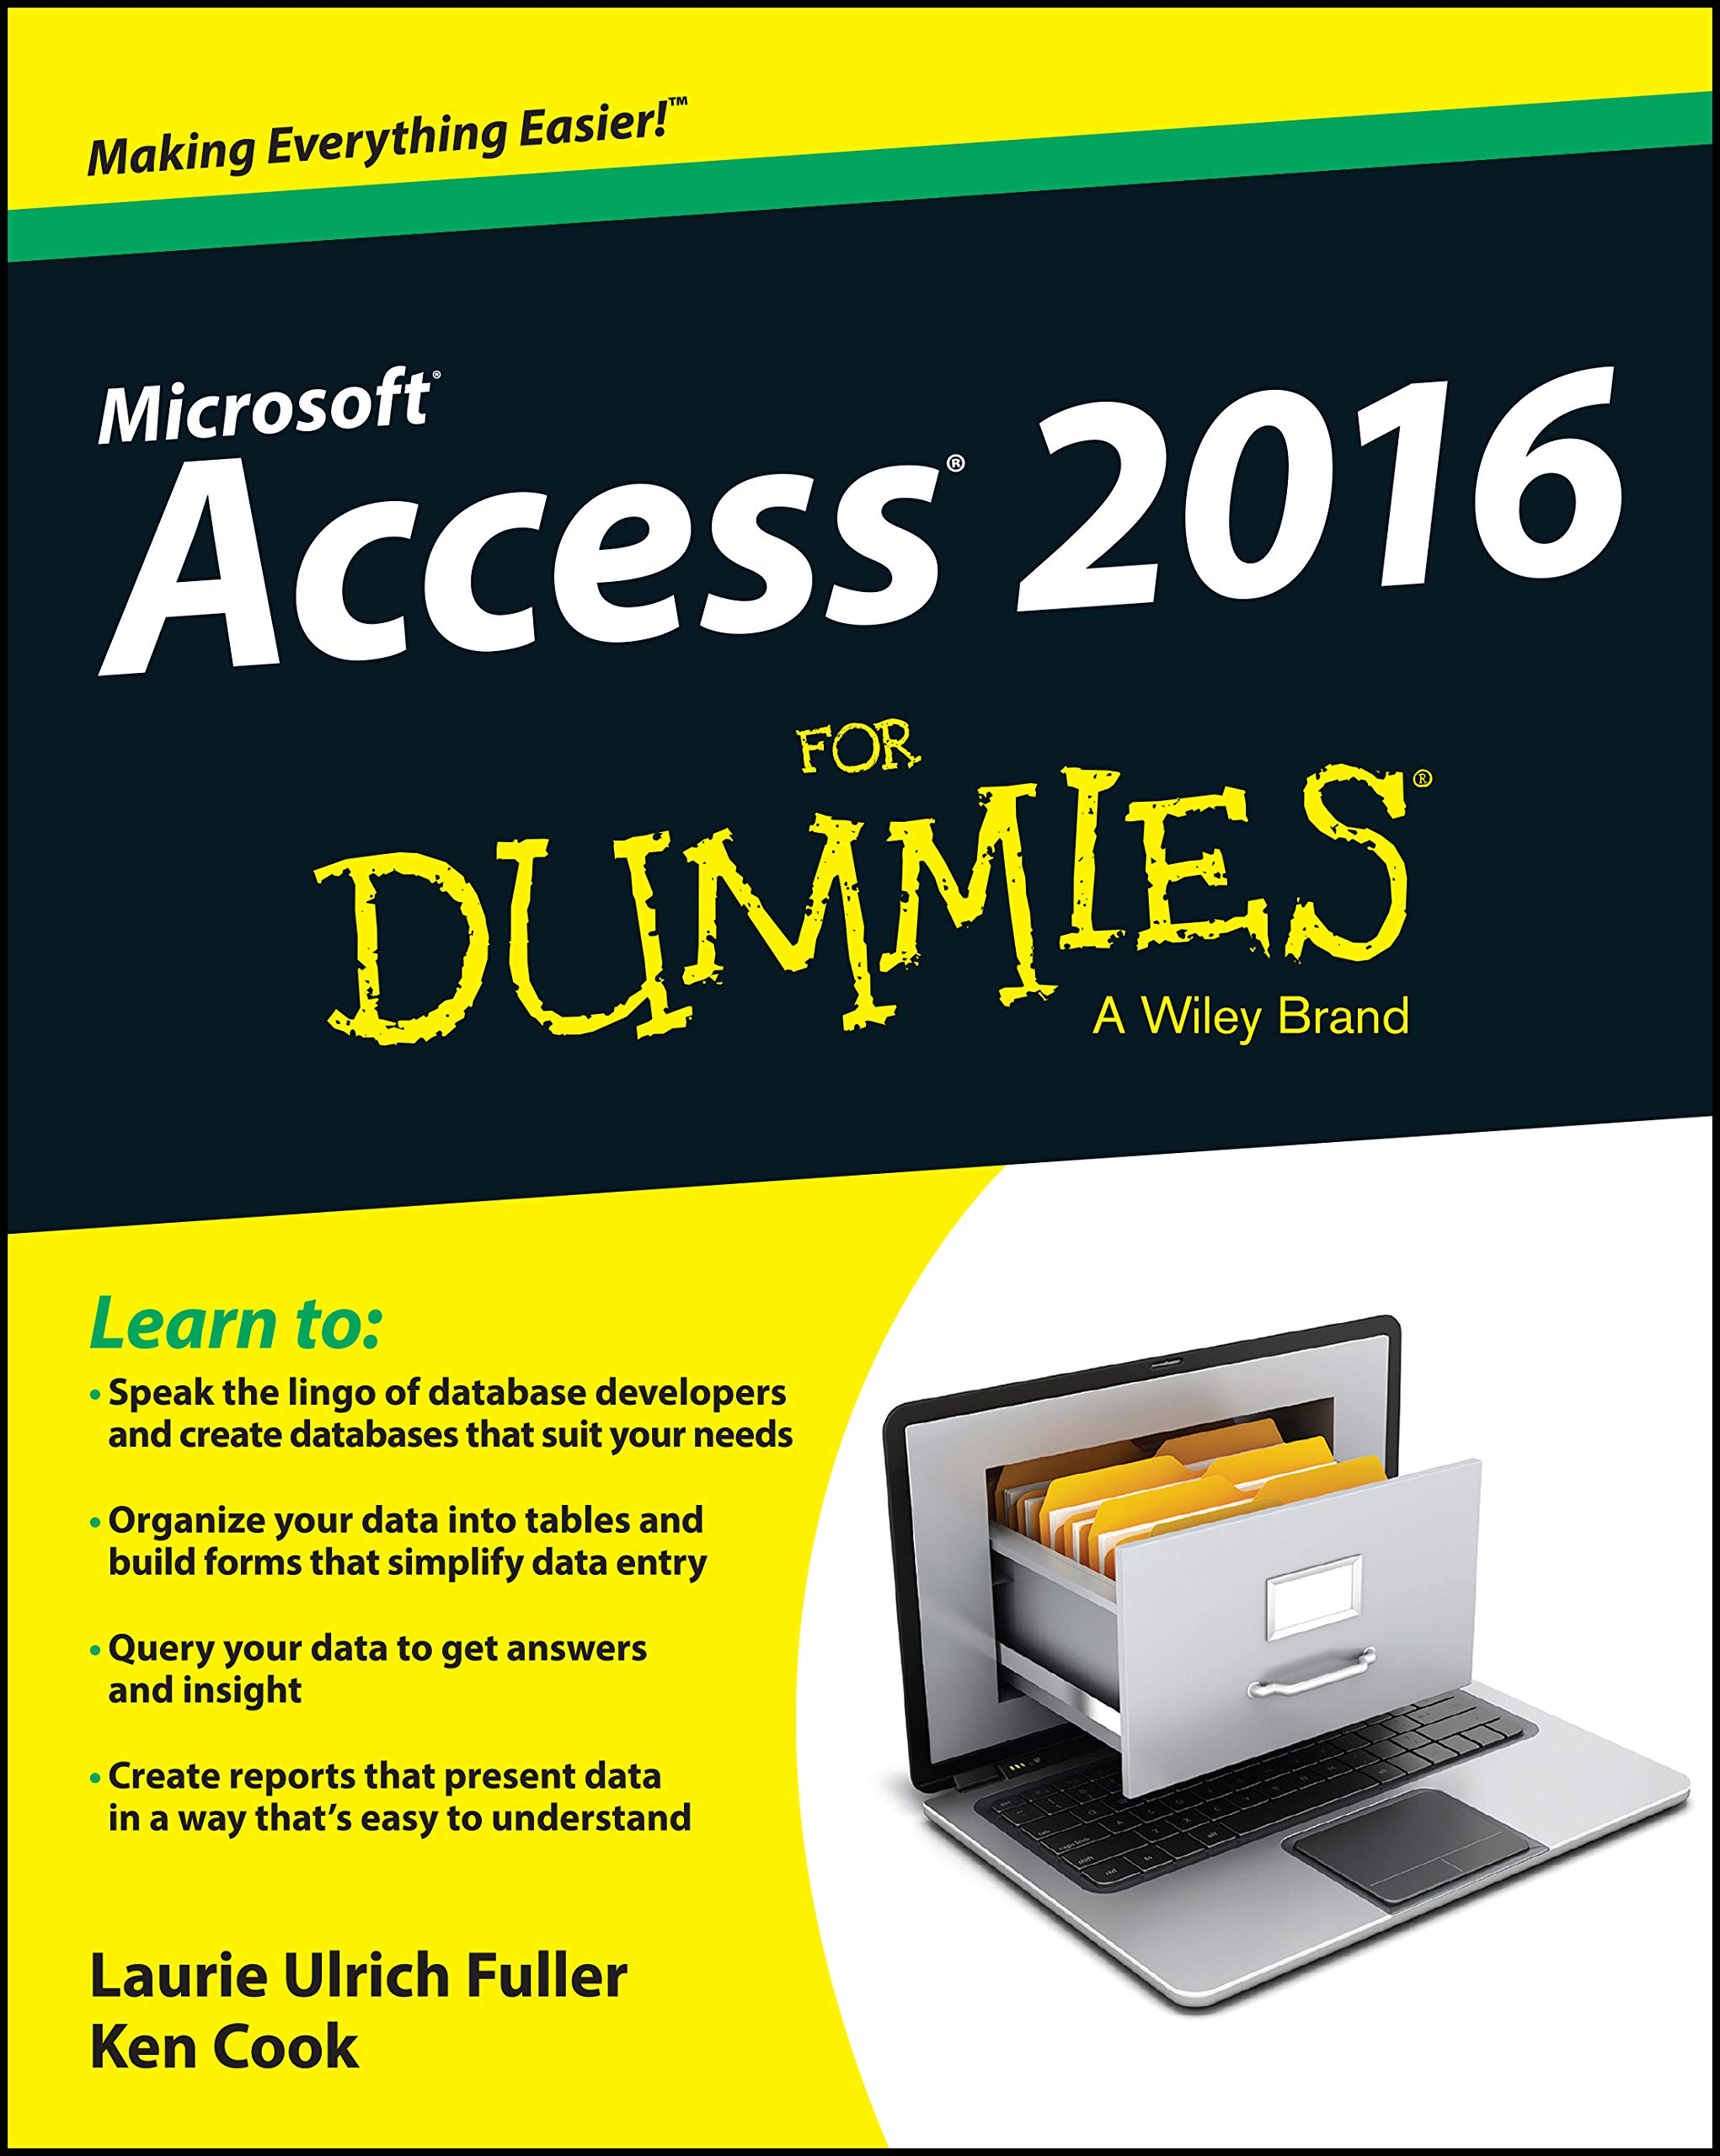 Image OfAccess 2016 For Dummies